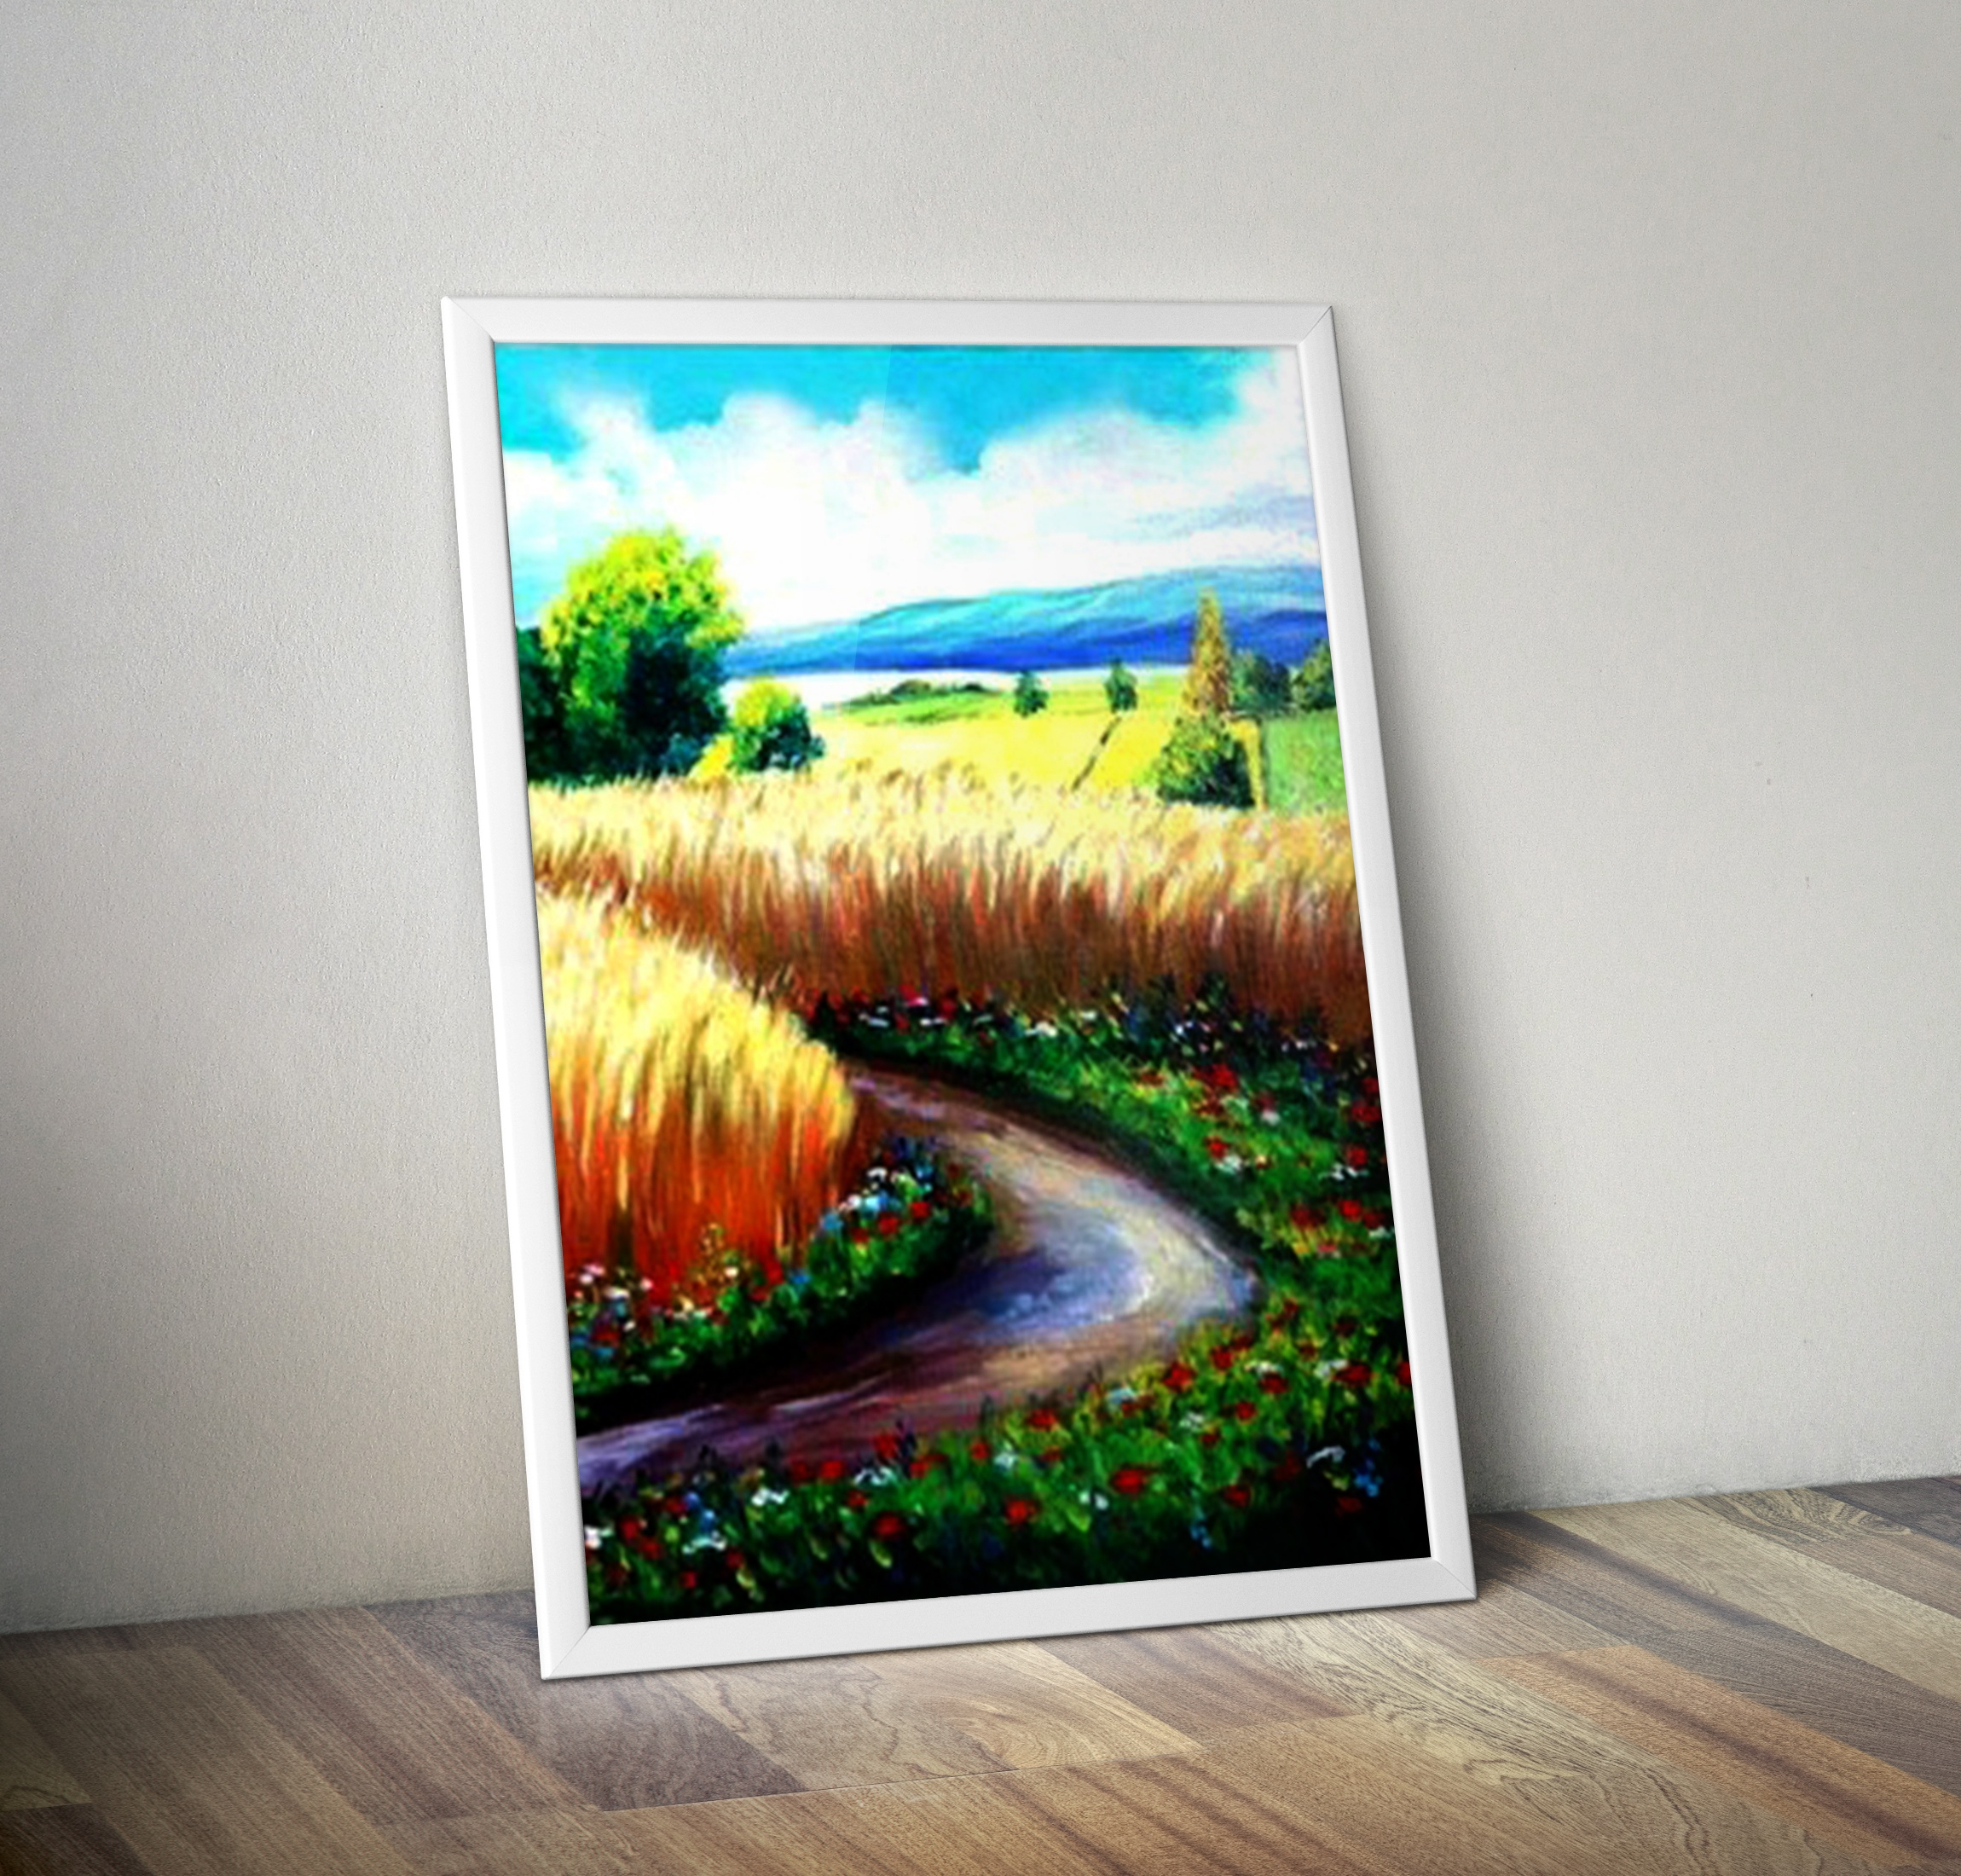 We paint - Ricefield_5_AUGUST.jpg